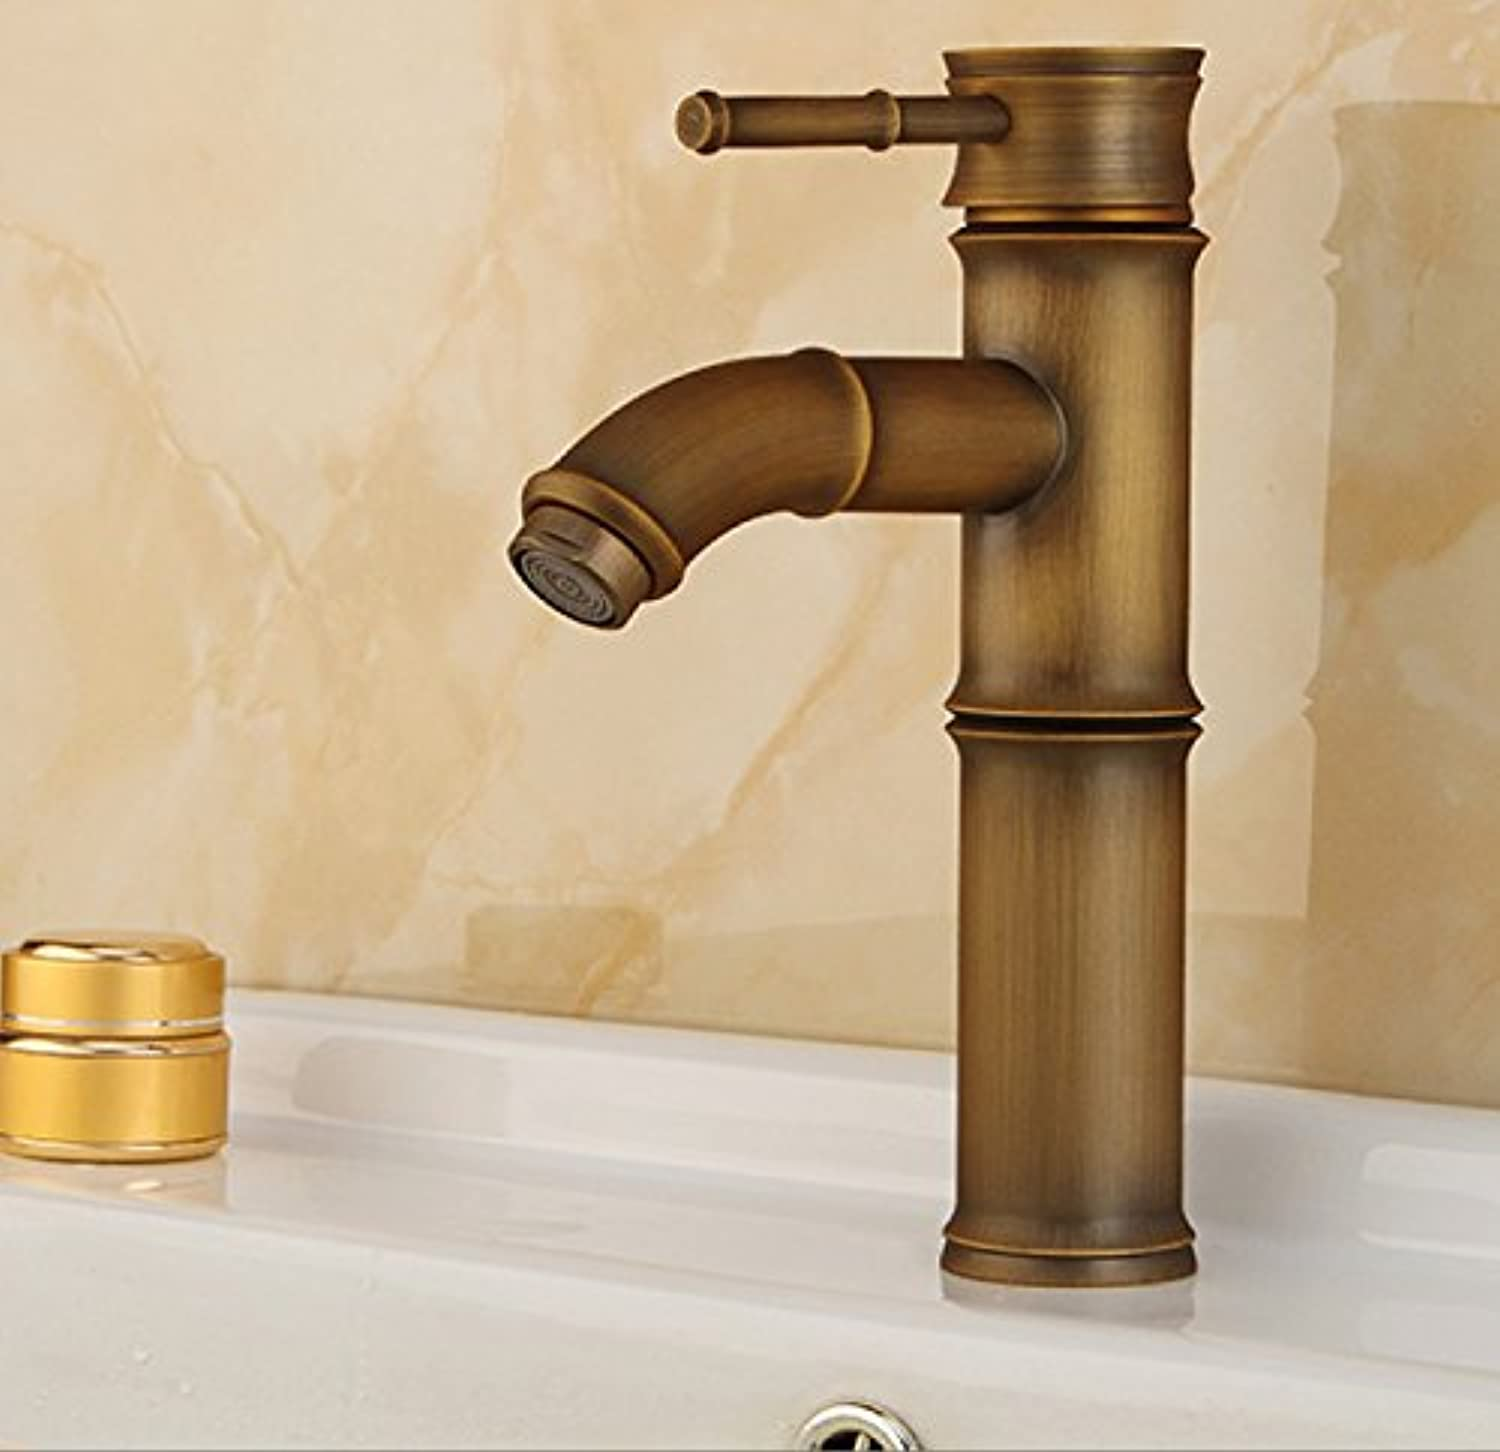 Hlluya Professional Sink Mixer Tap Kitchen Faucet Basin faucet antique faucet bronze basin-wide water faucet single handle hot and cold